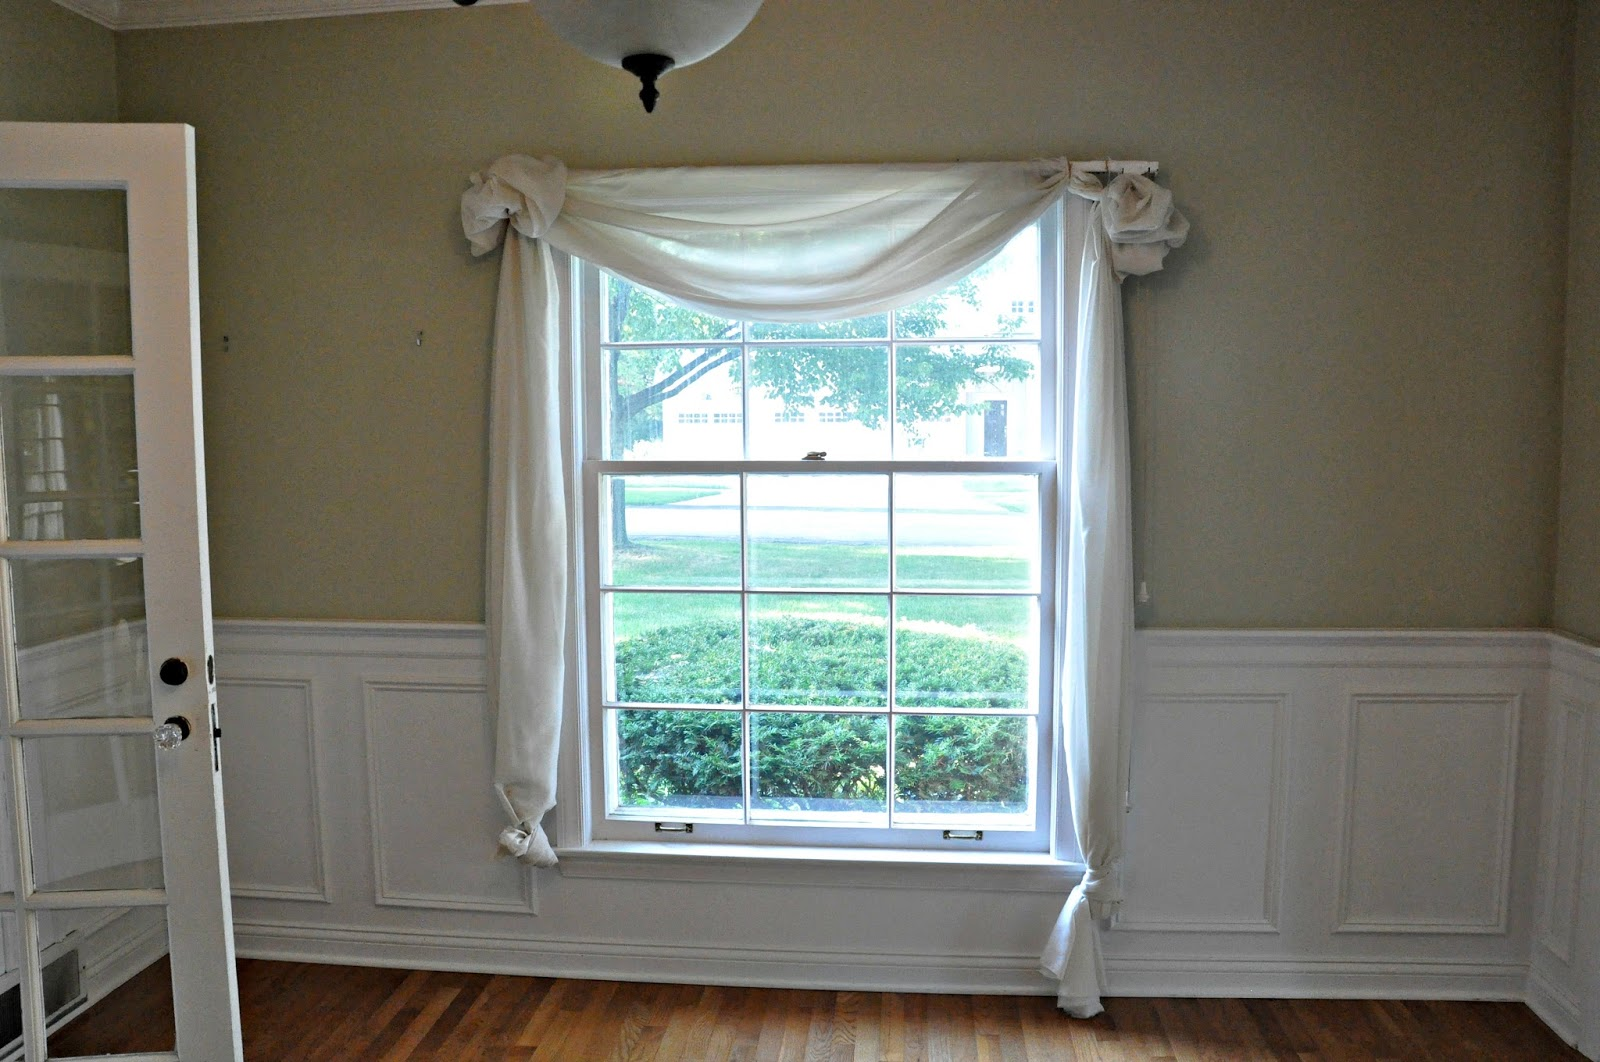 Serendipity refined blog window treatments my first 48 for What is a window treatment